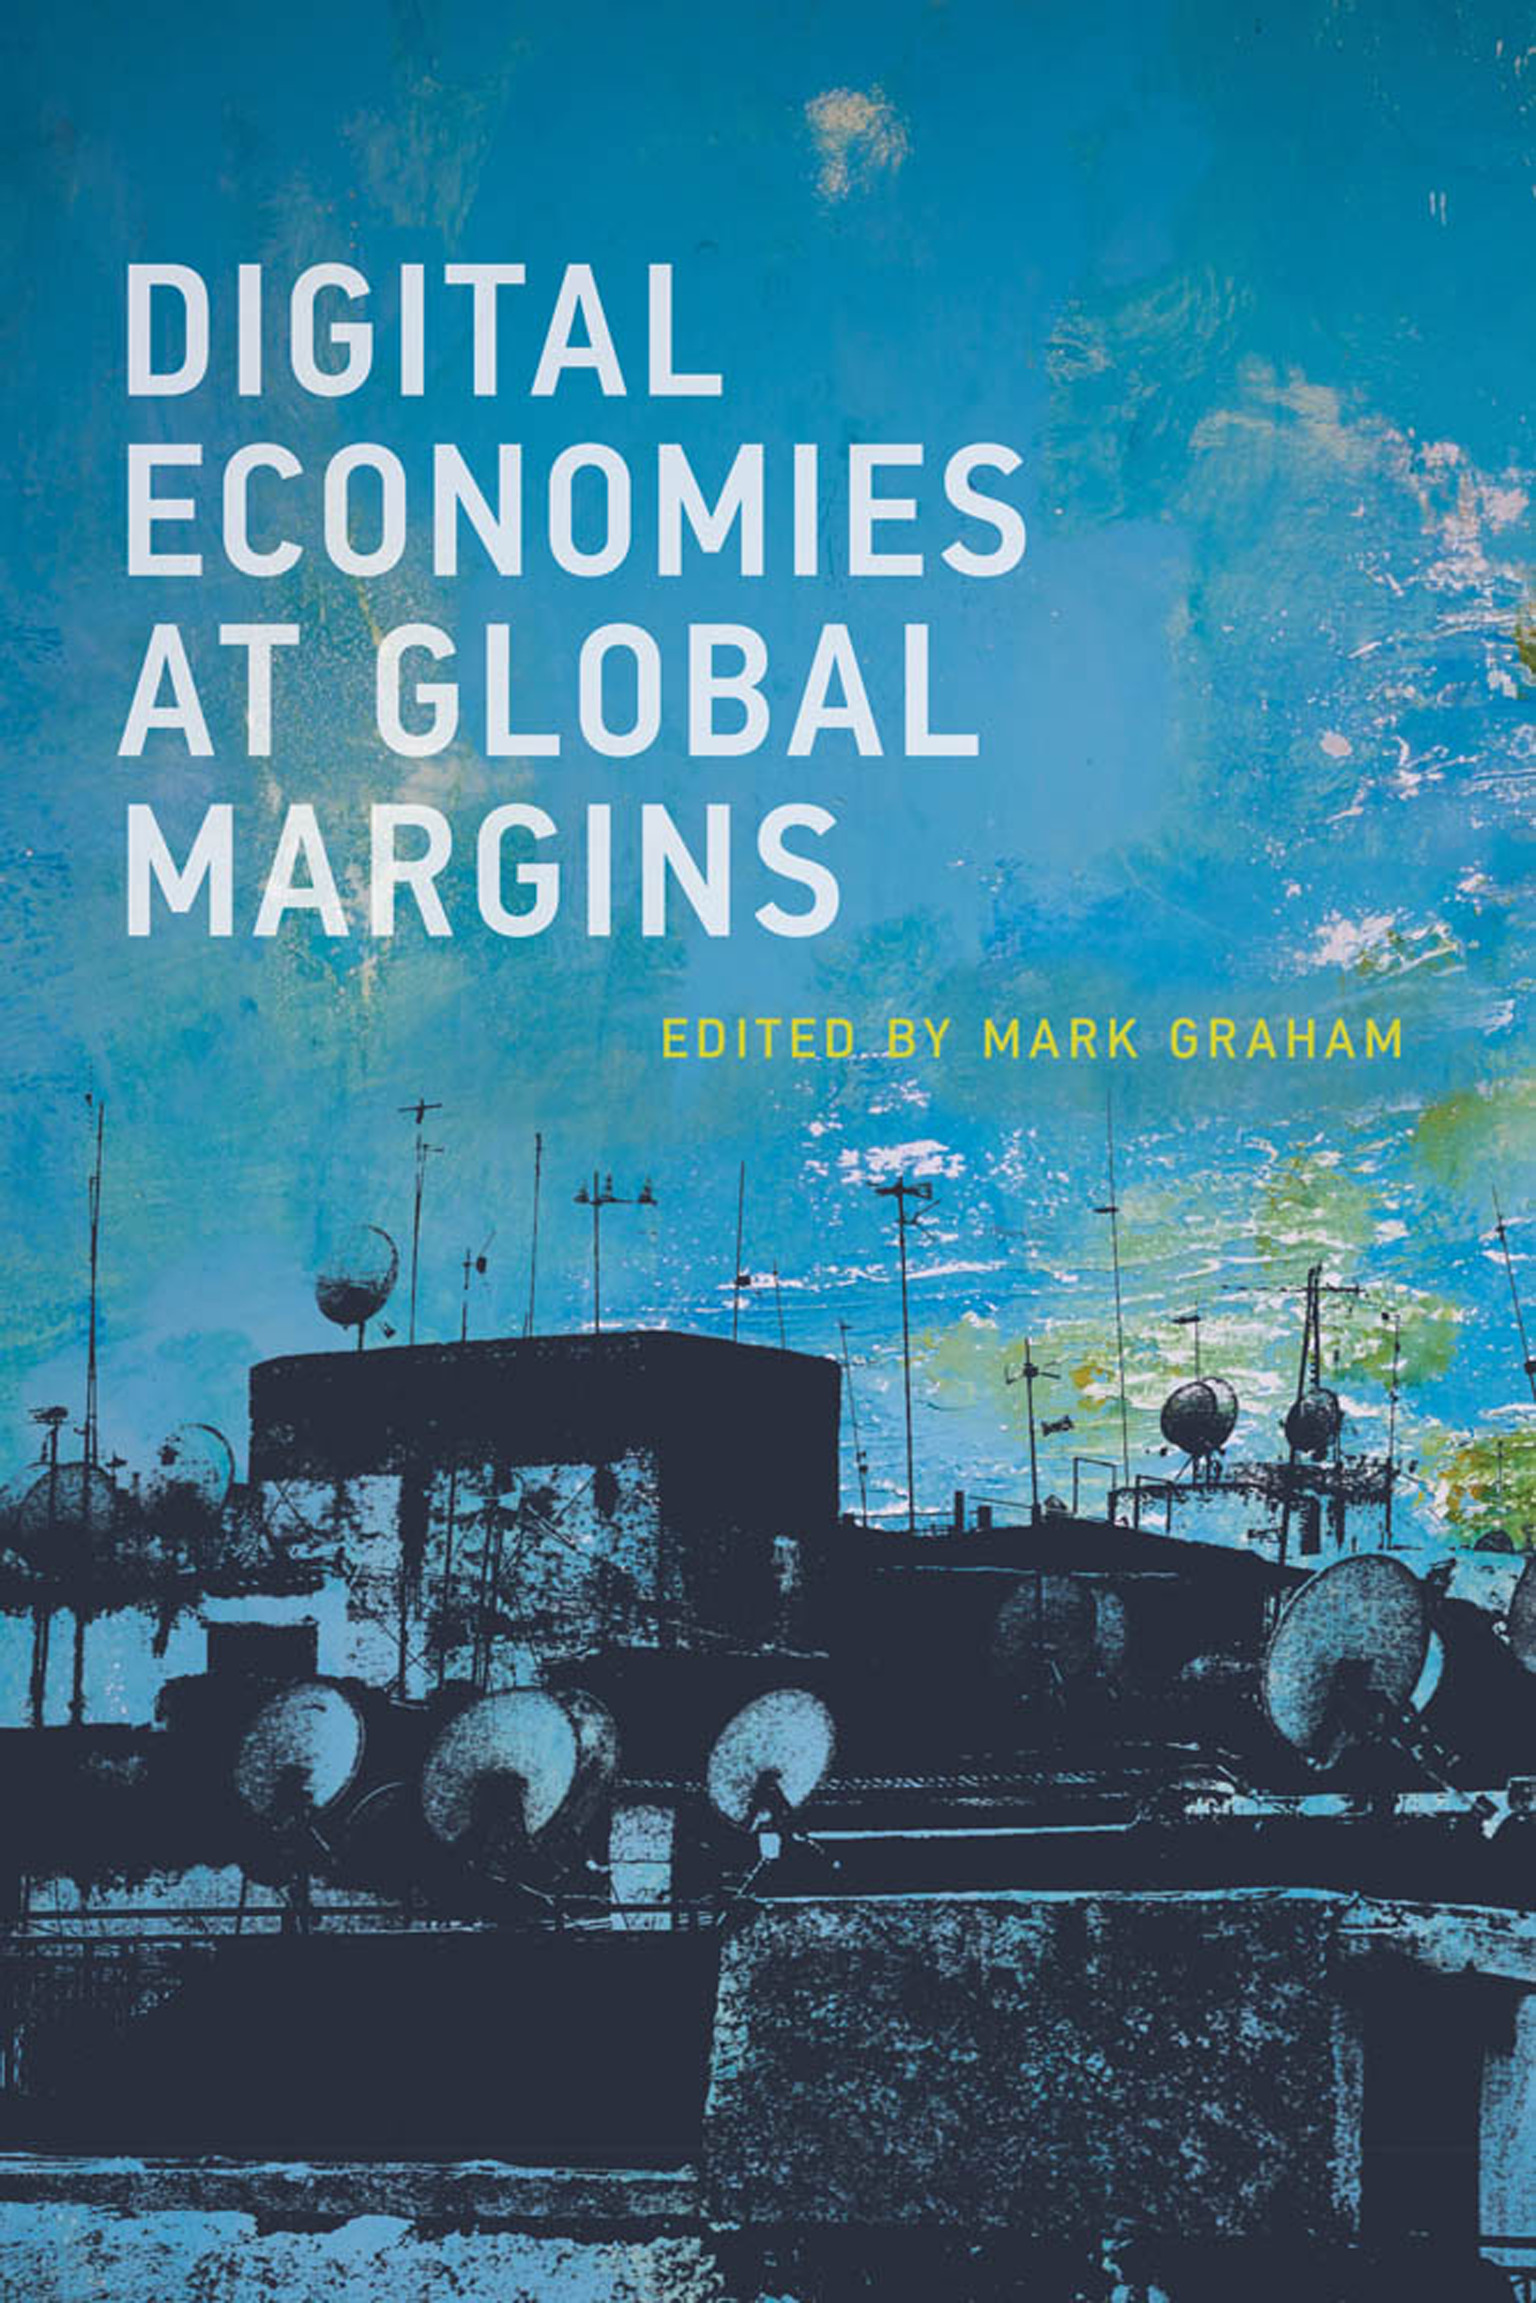 Digital Economies at Global Margins